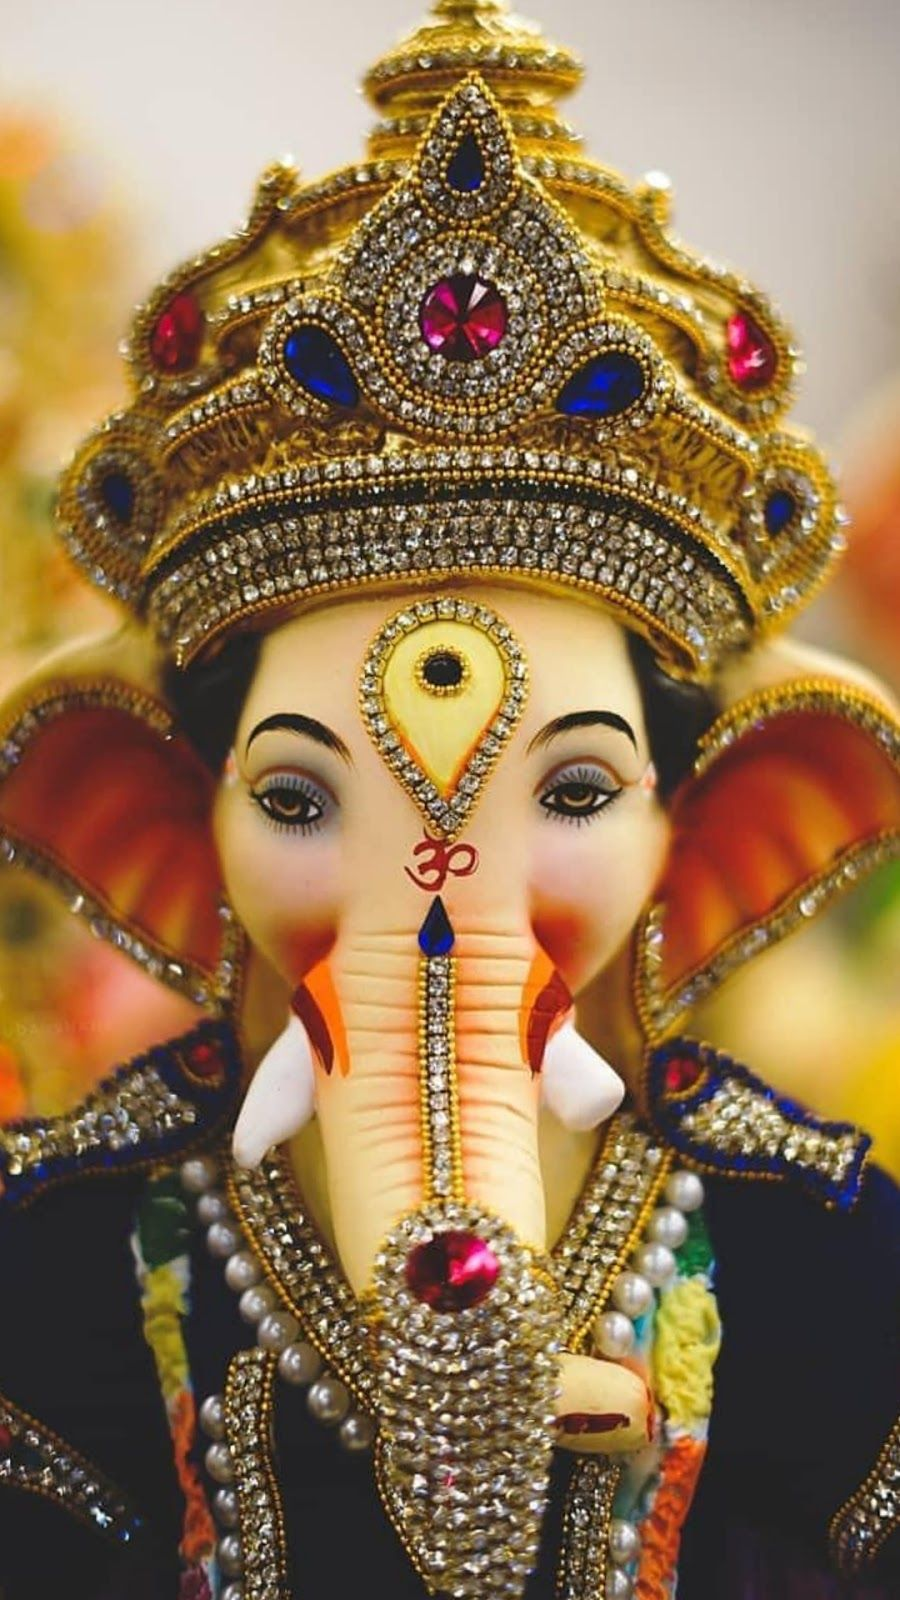 Full Hd Wallpapers Ganesha Hd Mobile Wallpaper Lord Ganesha Images Ganesh Chaturthi Images Ganpati Bappa Wallpapers Ganesh Images